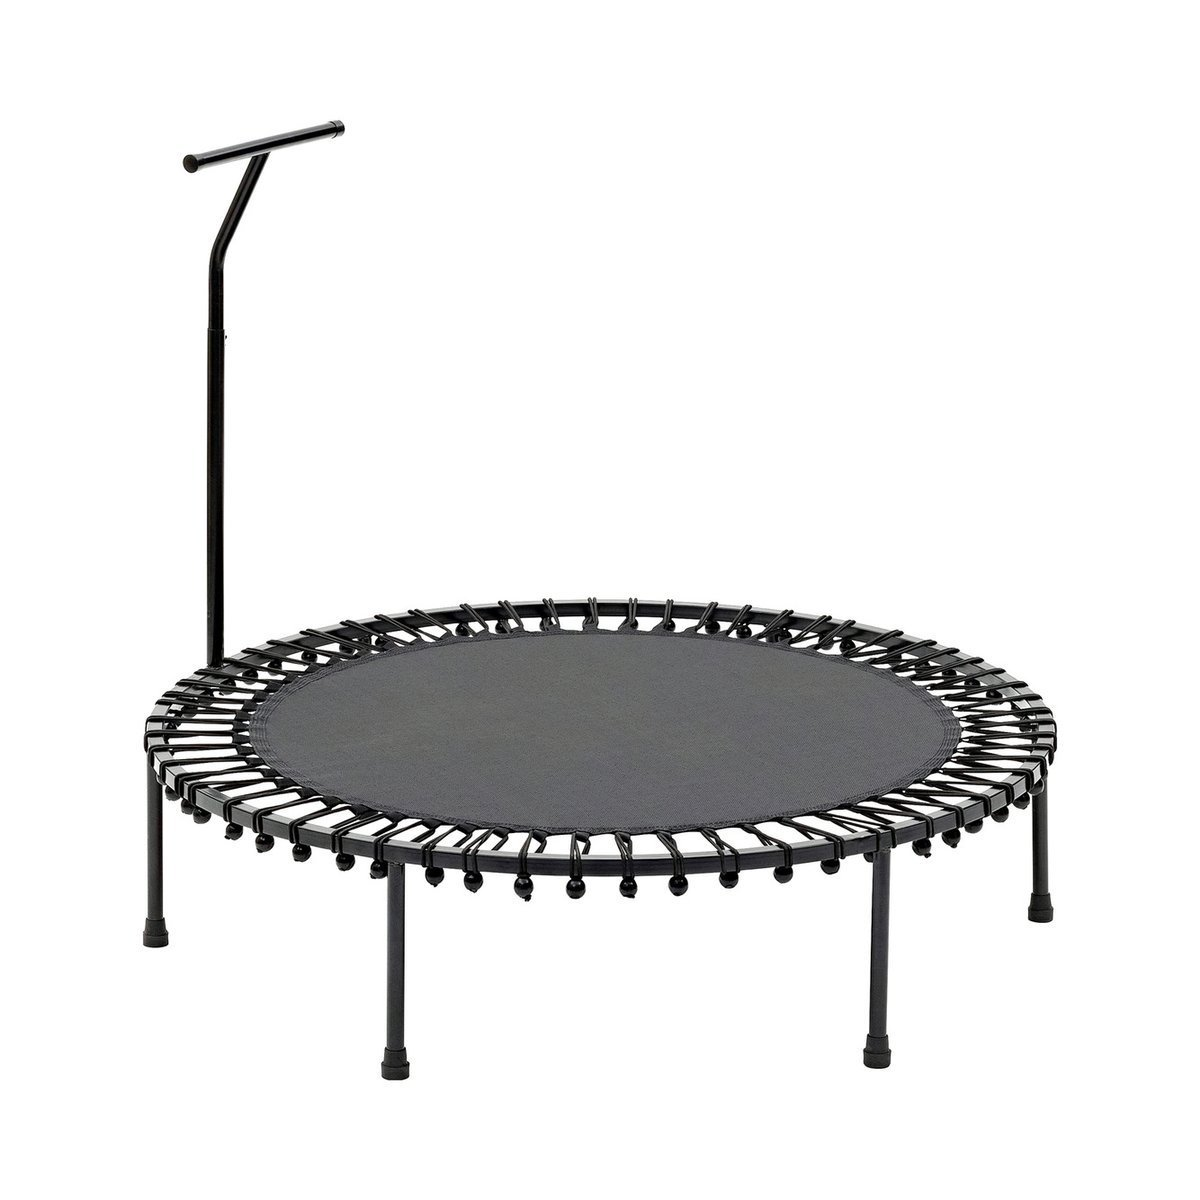 fitness trampolin bodyjump mit haltegriff im test. Black Bedroom Furniture Sets. Home Design Ideas